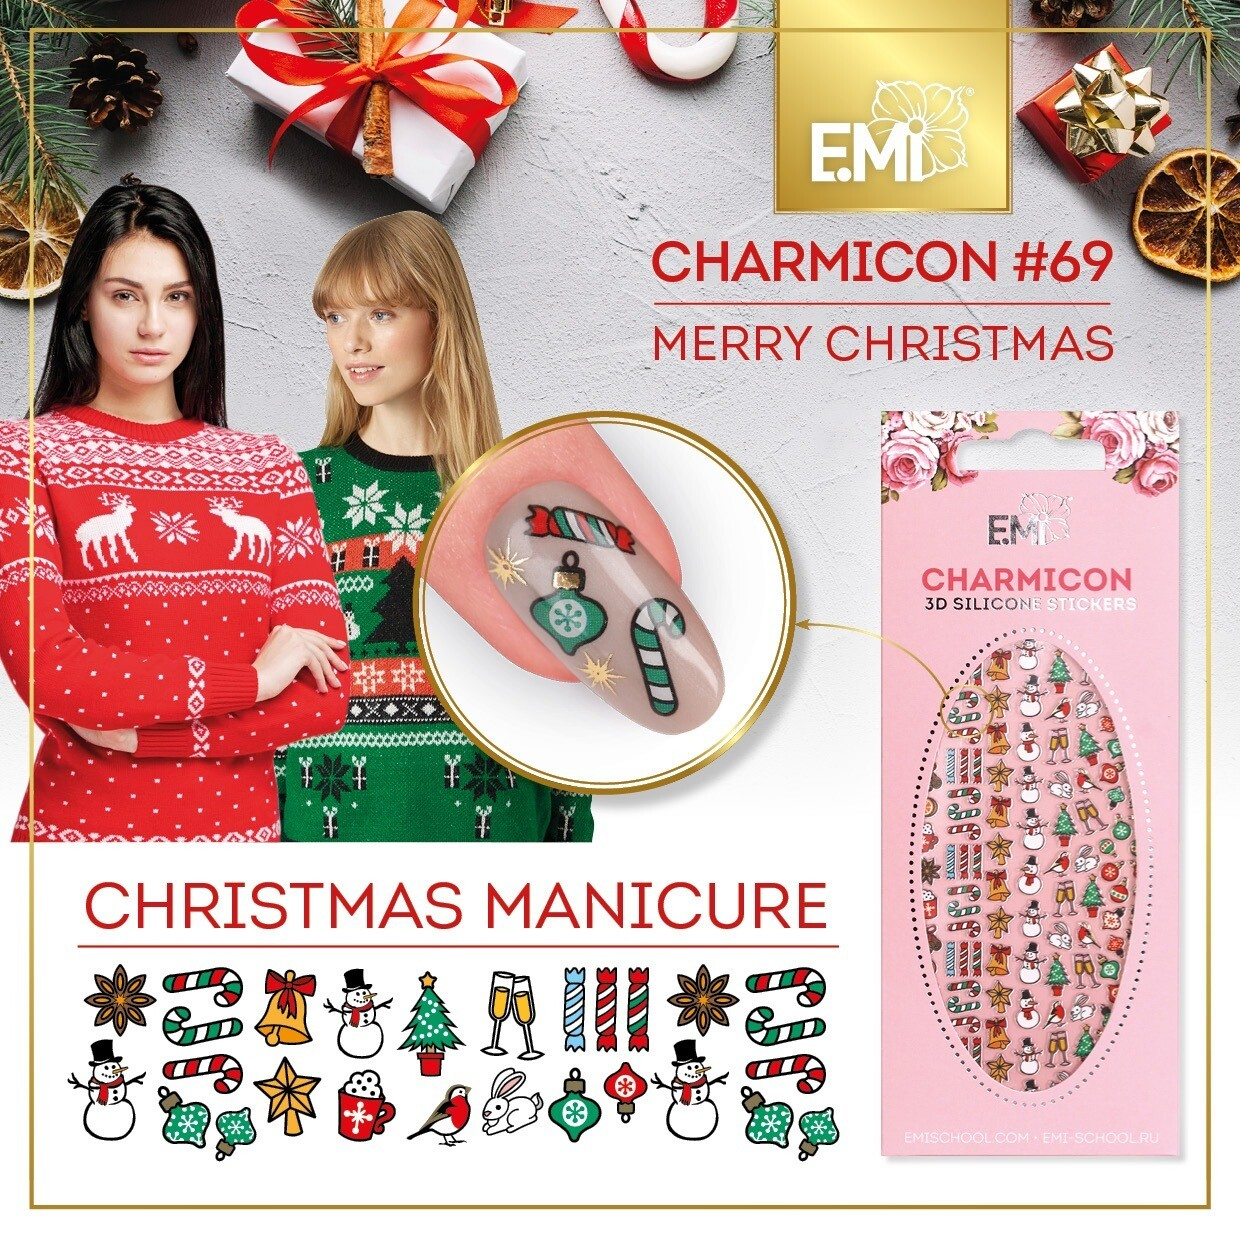 Charmicon Silicone Stickers #69 Merry Christmas